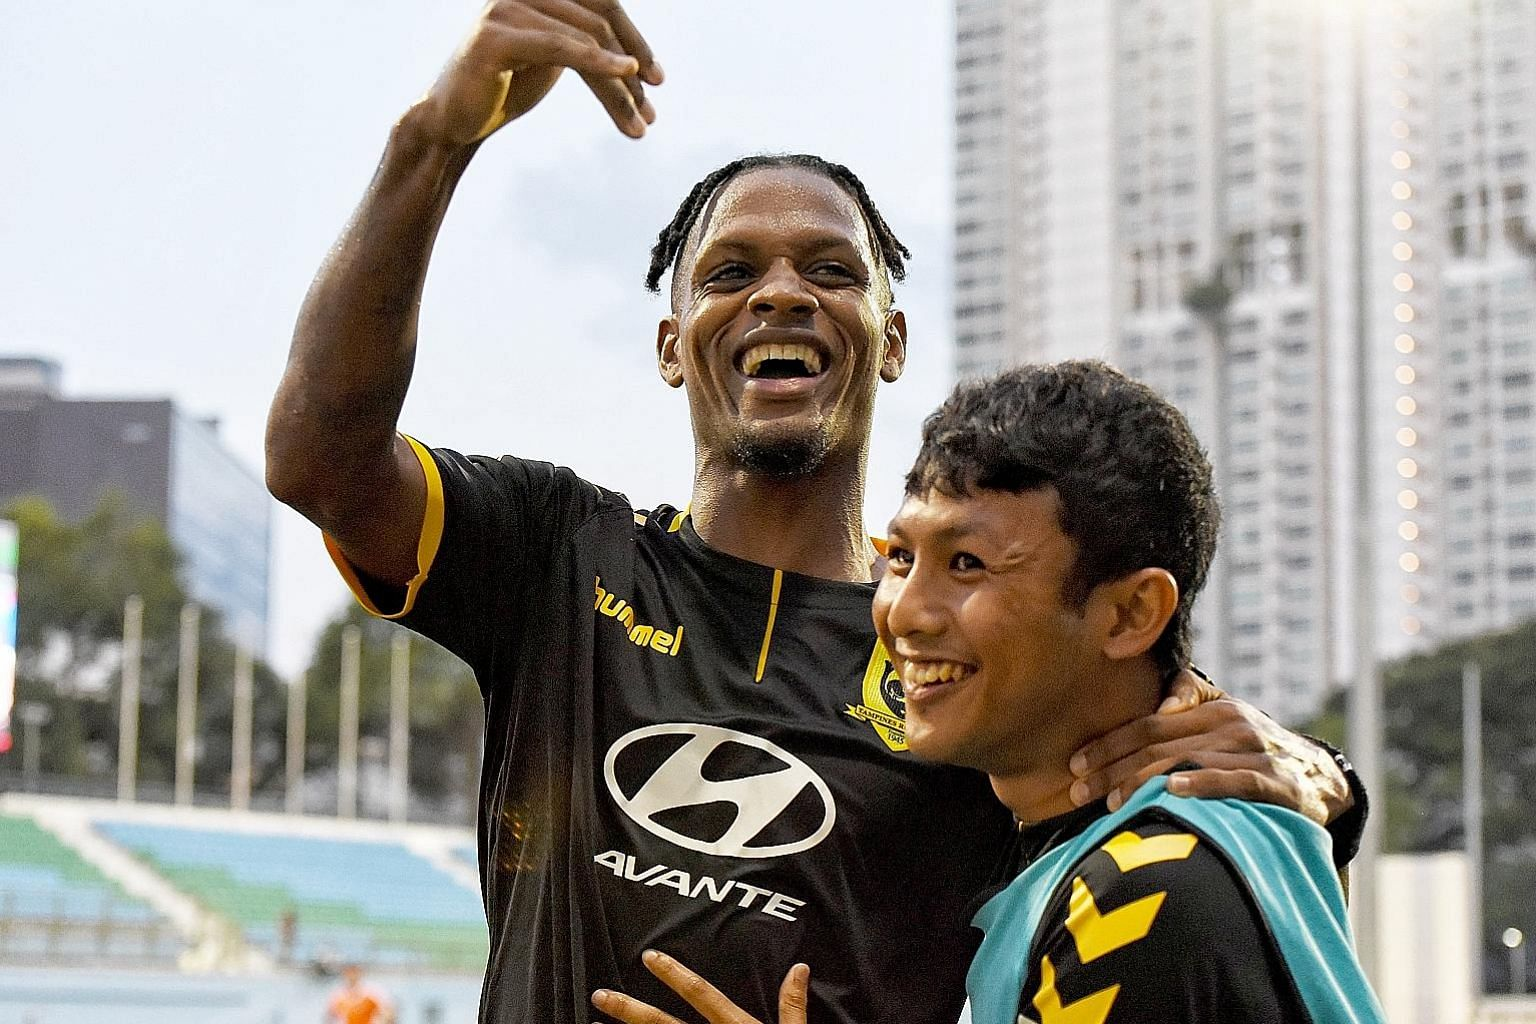 Jordan Webb celebrating with Zulfadhmi Suzliman after scoring a goal back in July. His strike last night in Bandar Seri Begawan gave Tampines full points and keeps their hopes of finishing second alive. ST FILE PHOTO